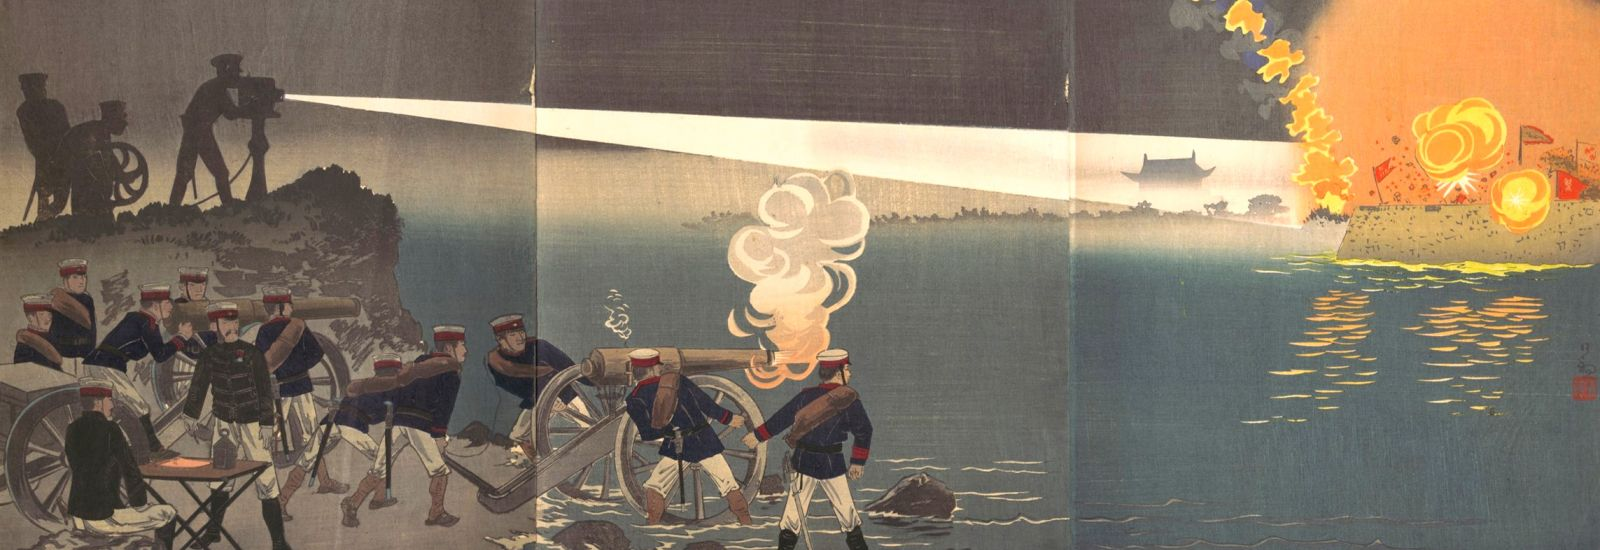 Woodblock print showing and army with a searchlight firing across water to a blazing building.